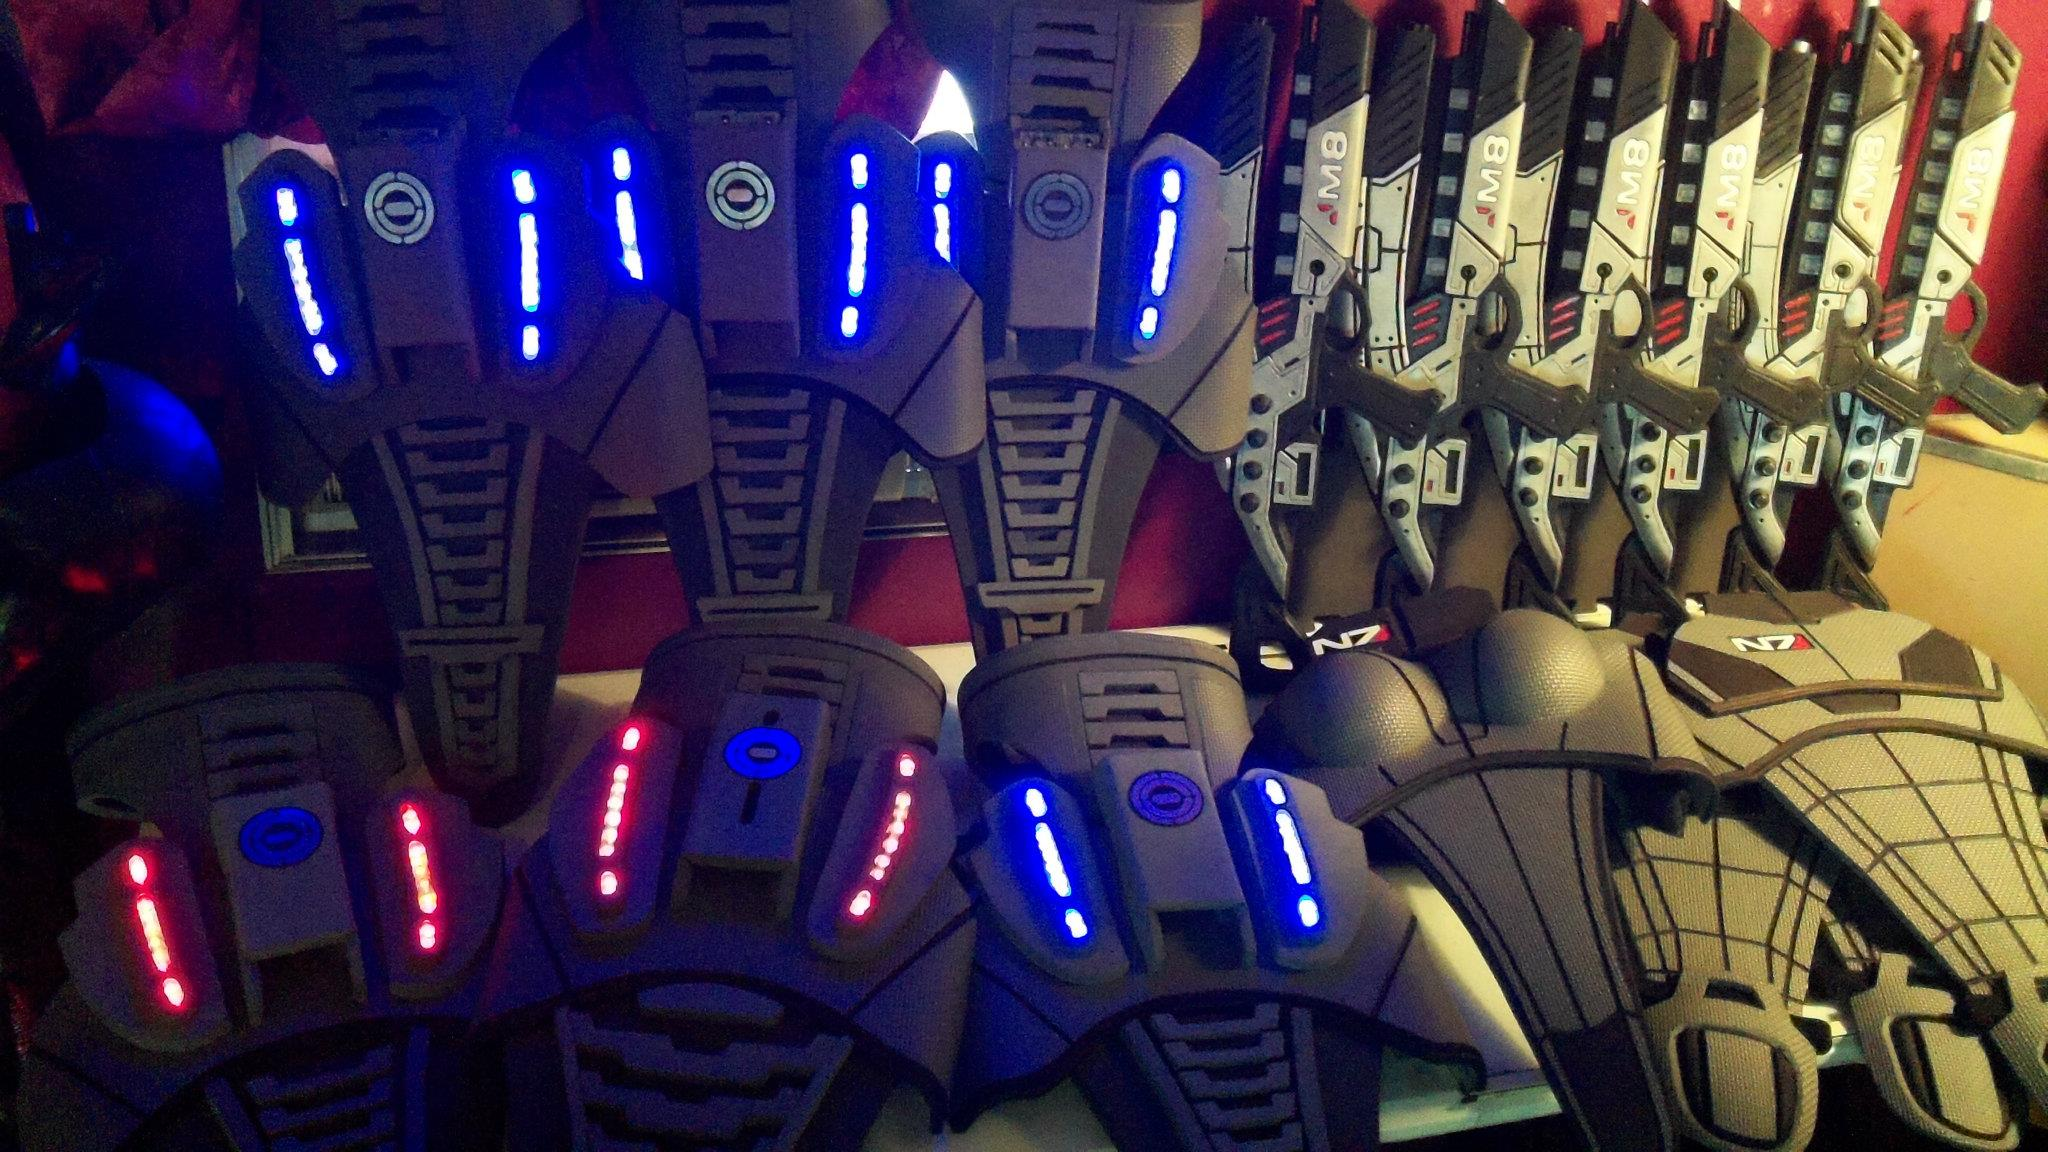 Mass Effect Armor & Weapons